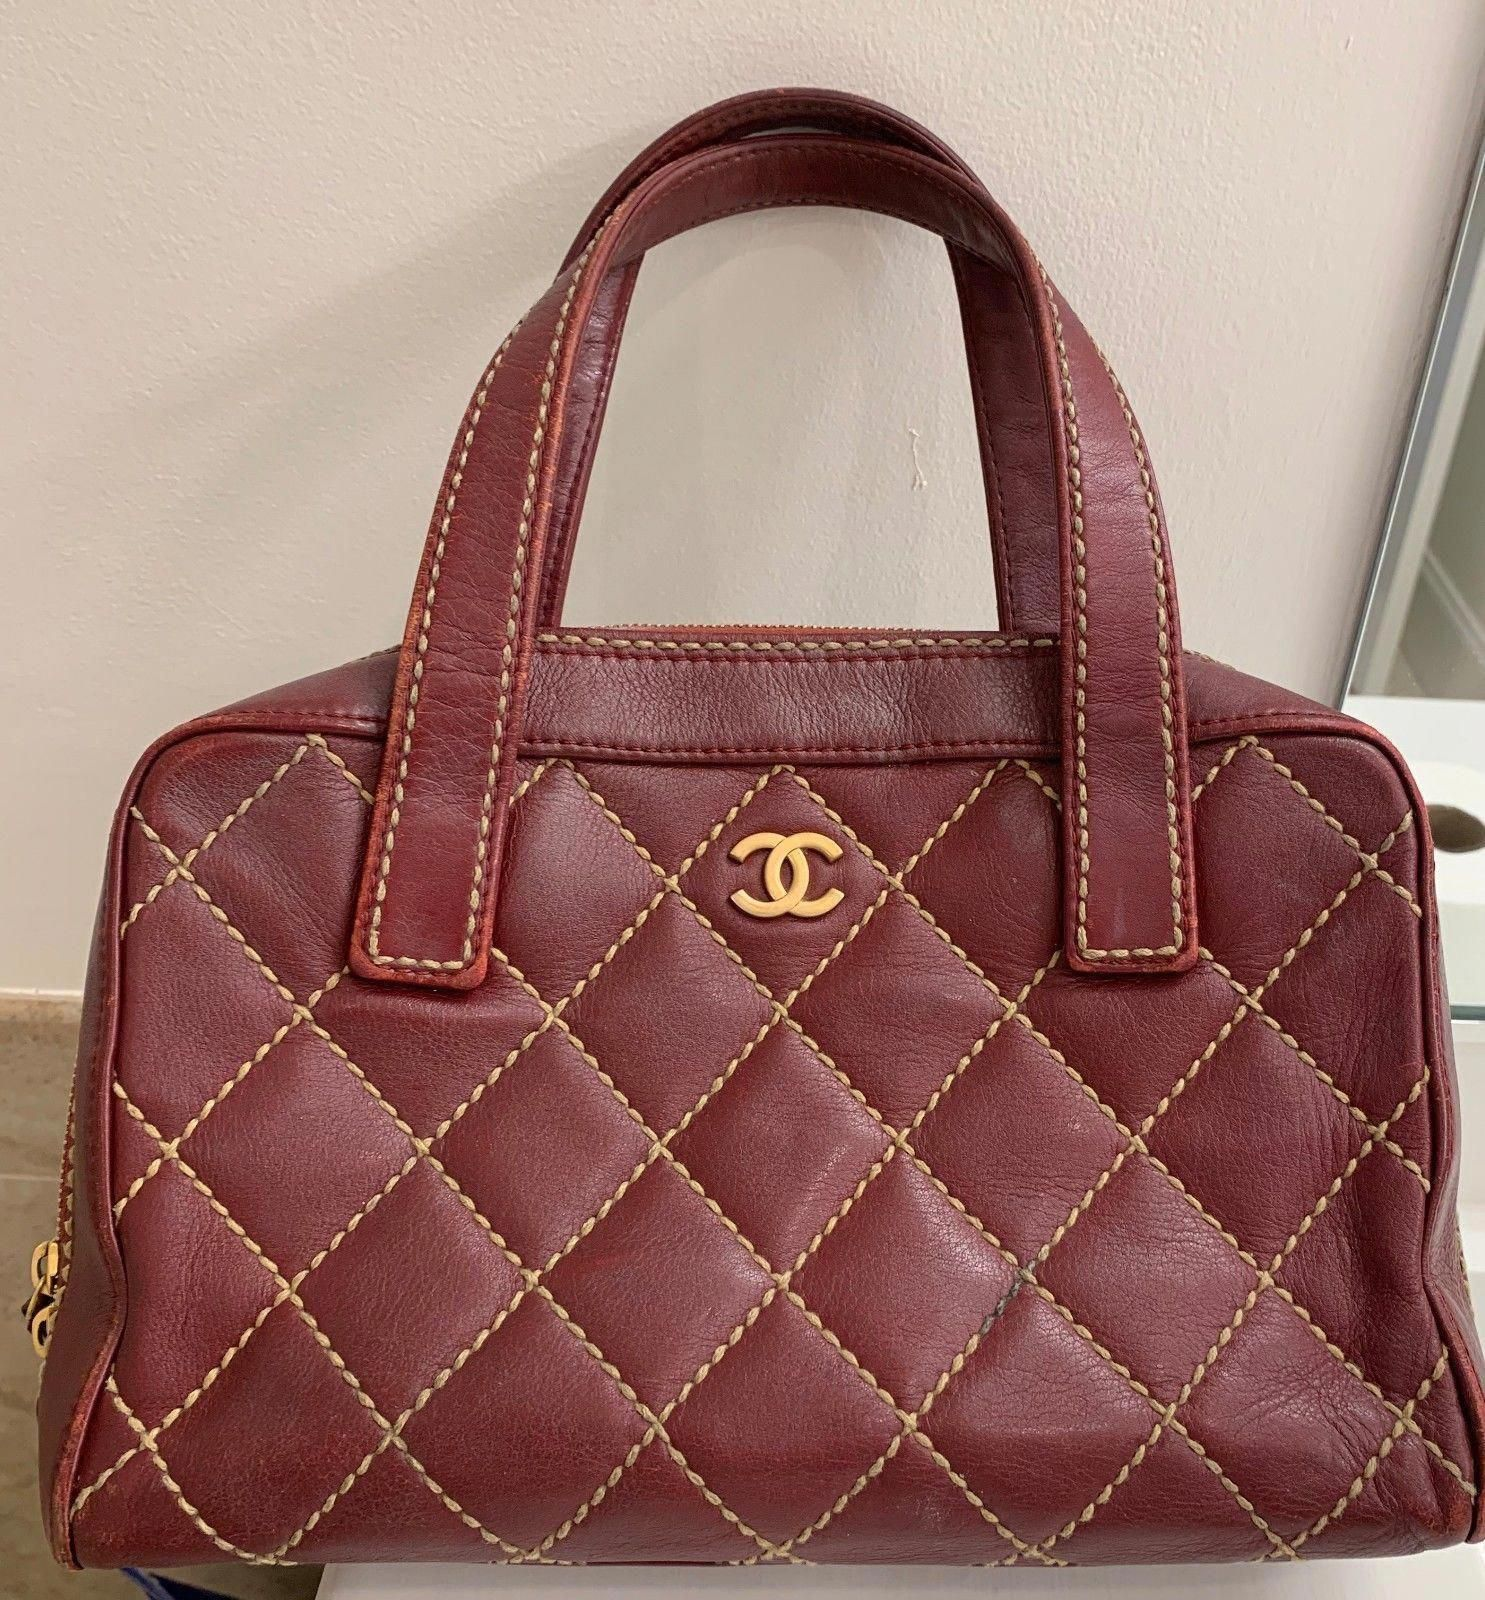 Chanel Red Leather Quilted Wild Stitch Flap Medium Satchel Handbag  229.0   chanel  handbag  Chanelhandbags 078633c80834a